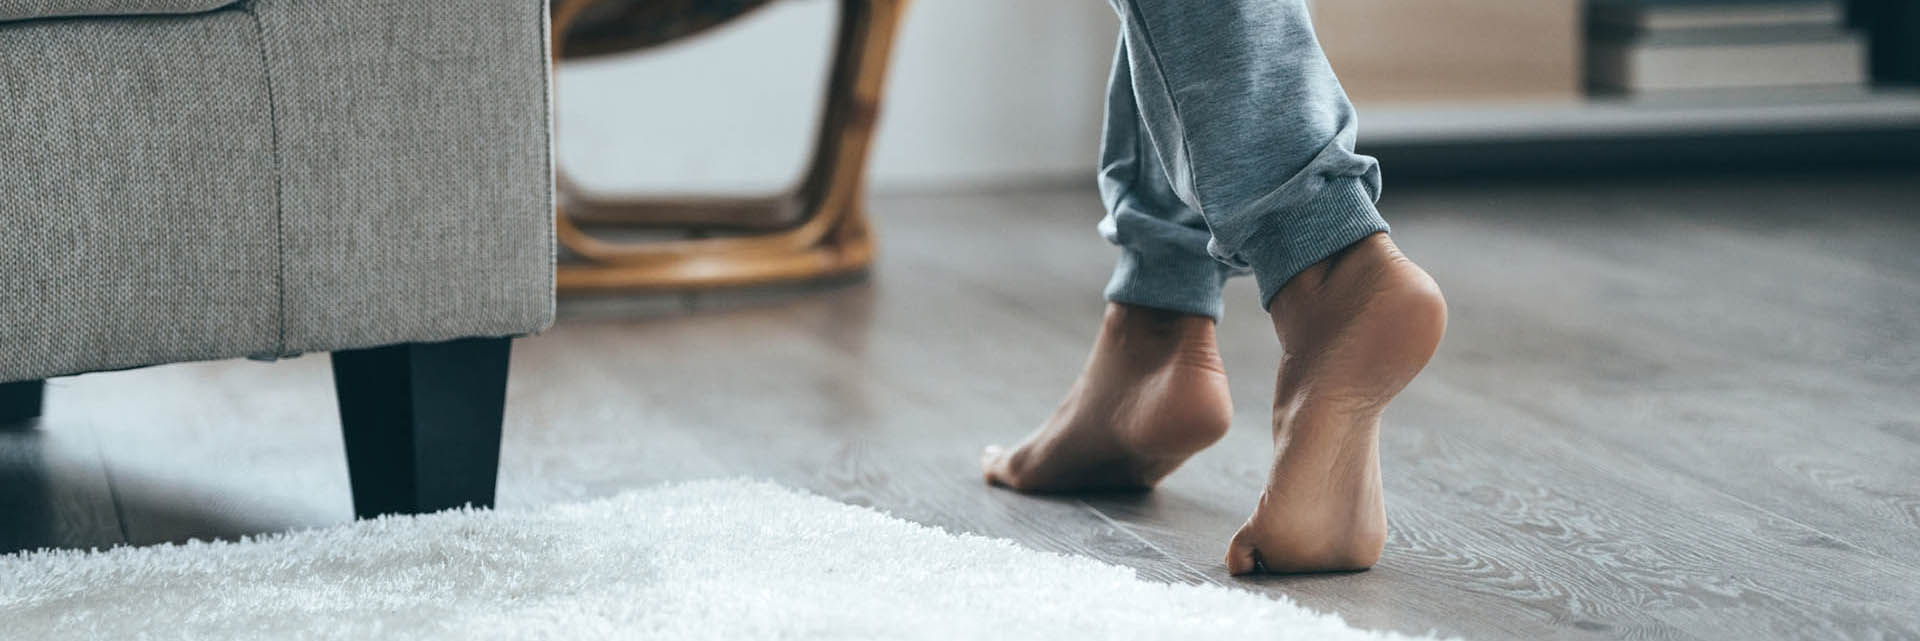 RESTORE THE SHINE TO YOUR WOOD FLOORS